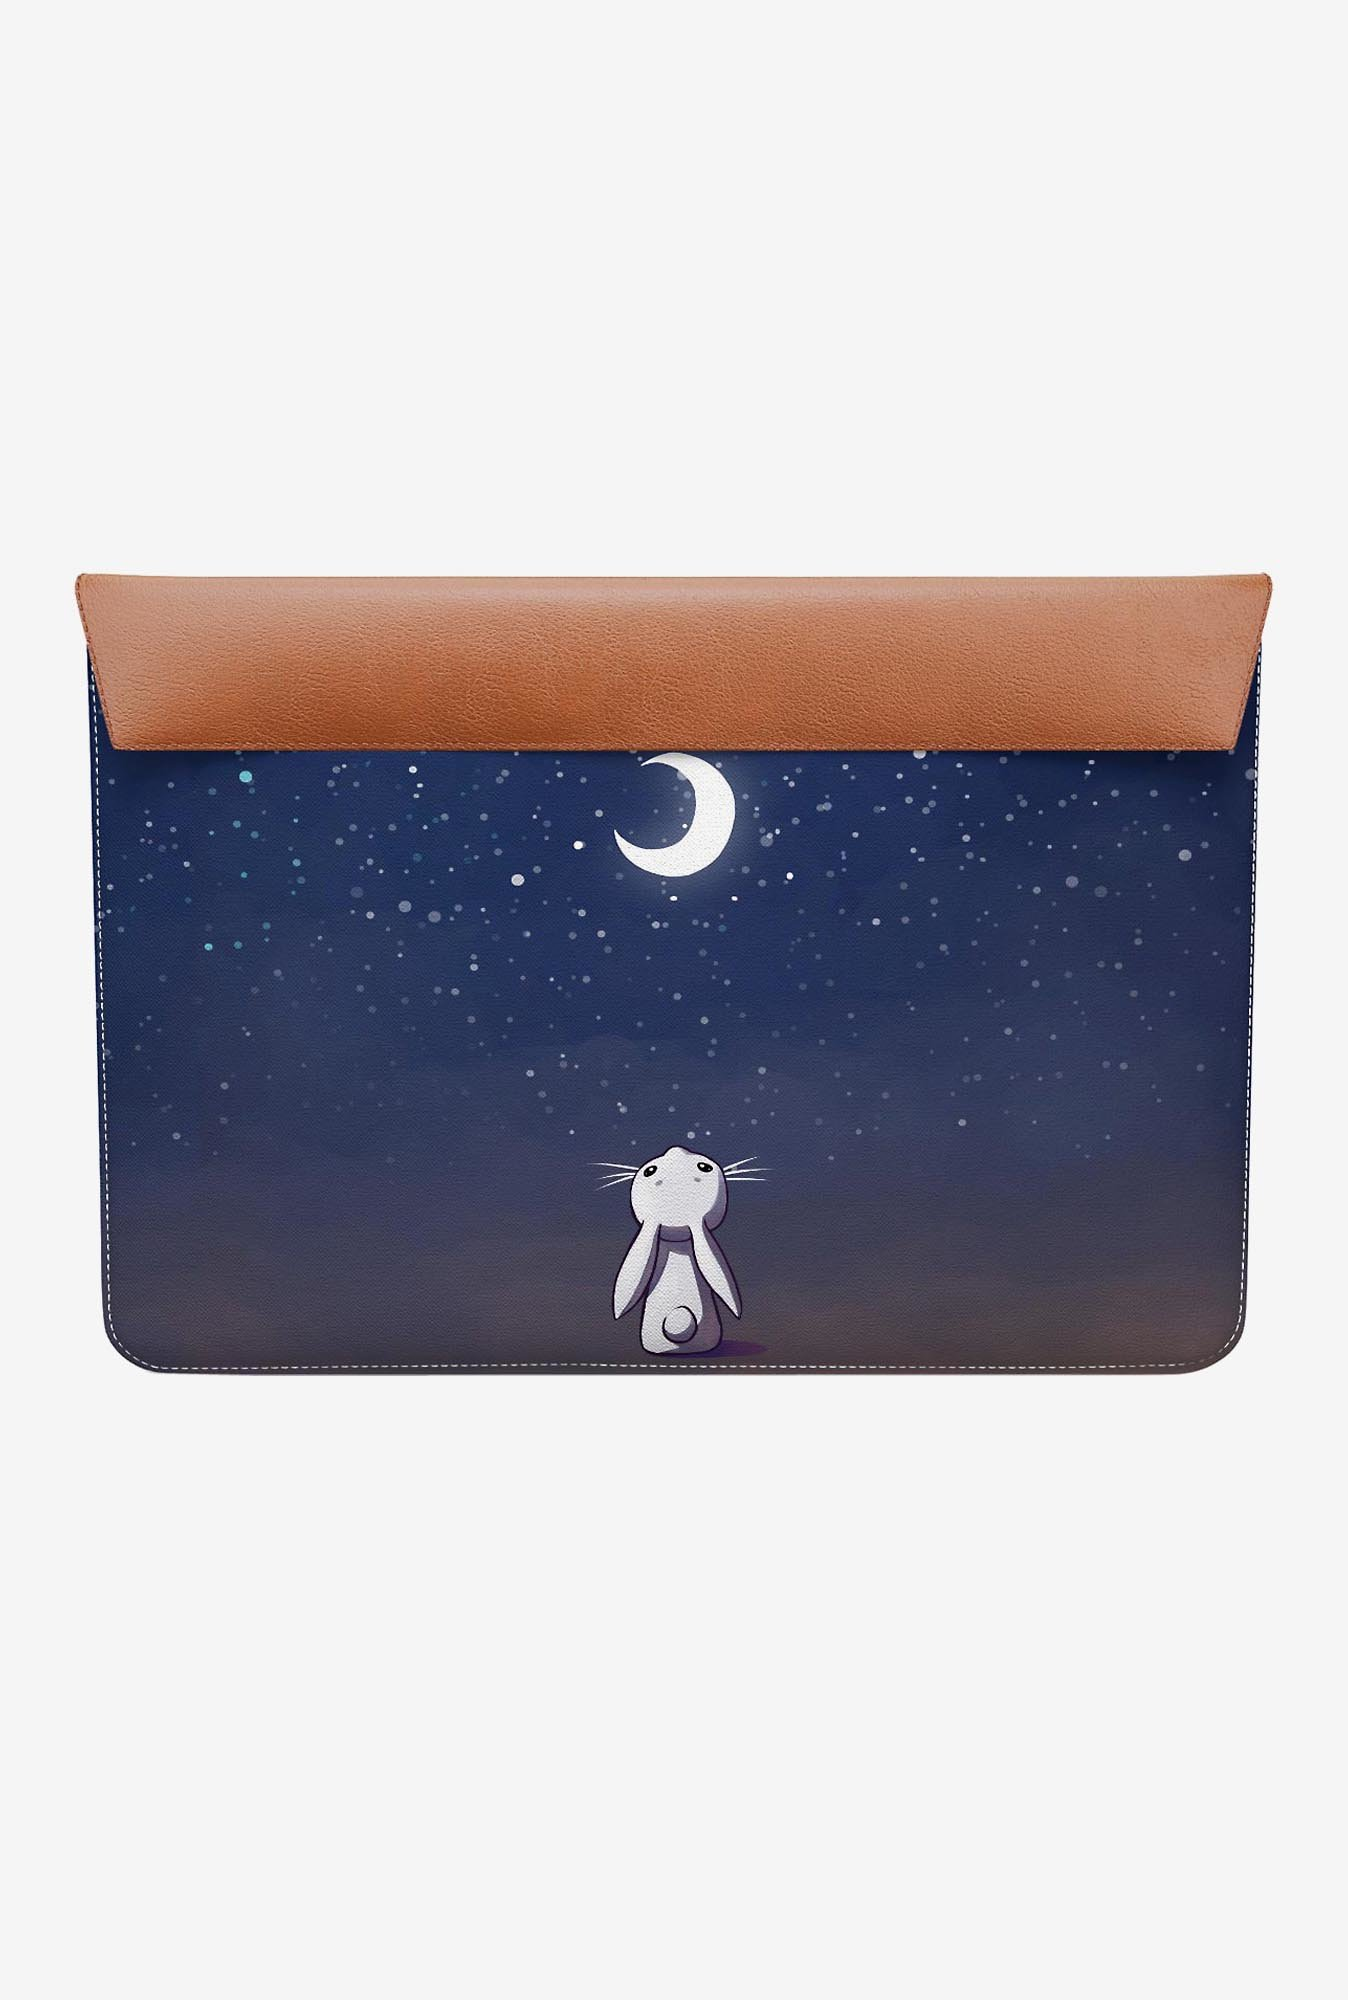 DailyObjects Moon Bunny MacBook Air 11 Envelope Sleeve